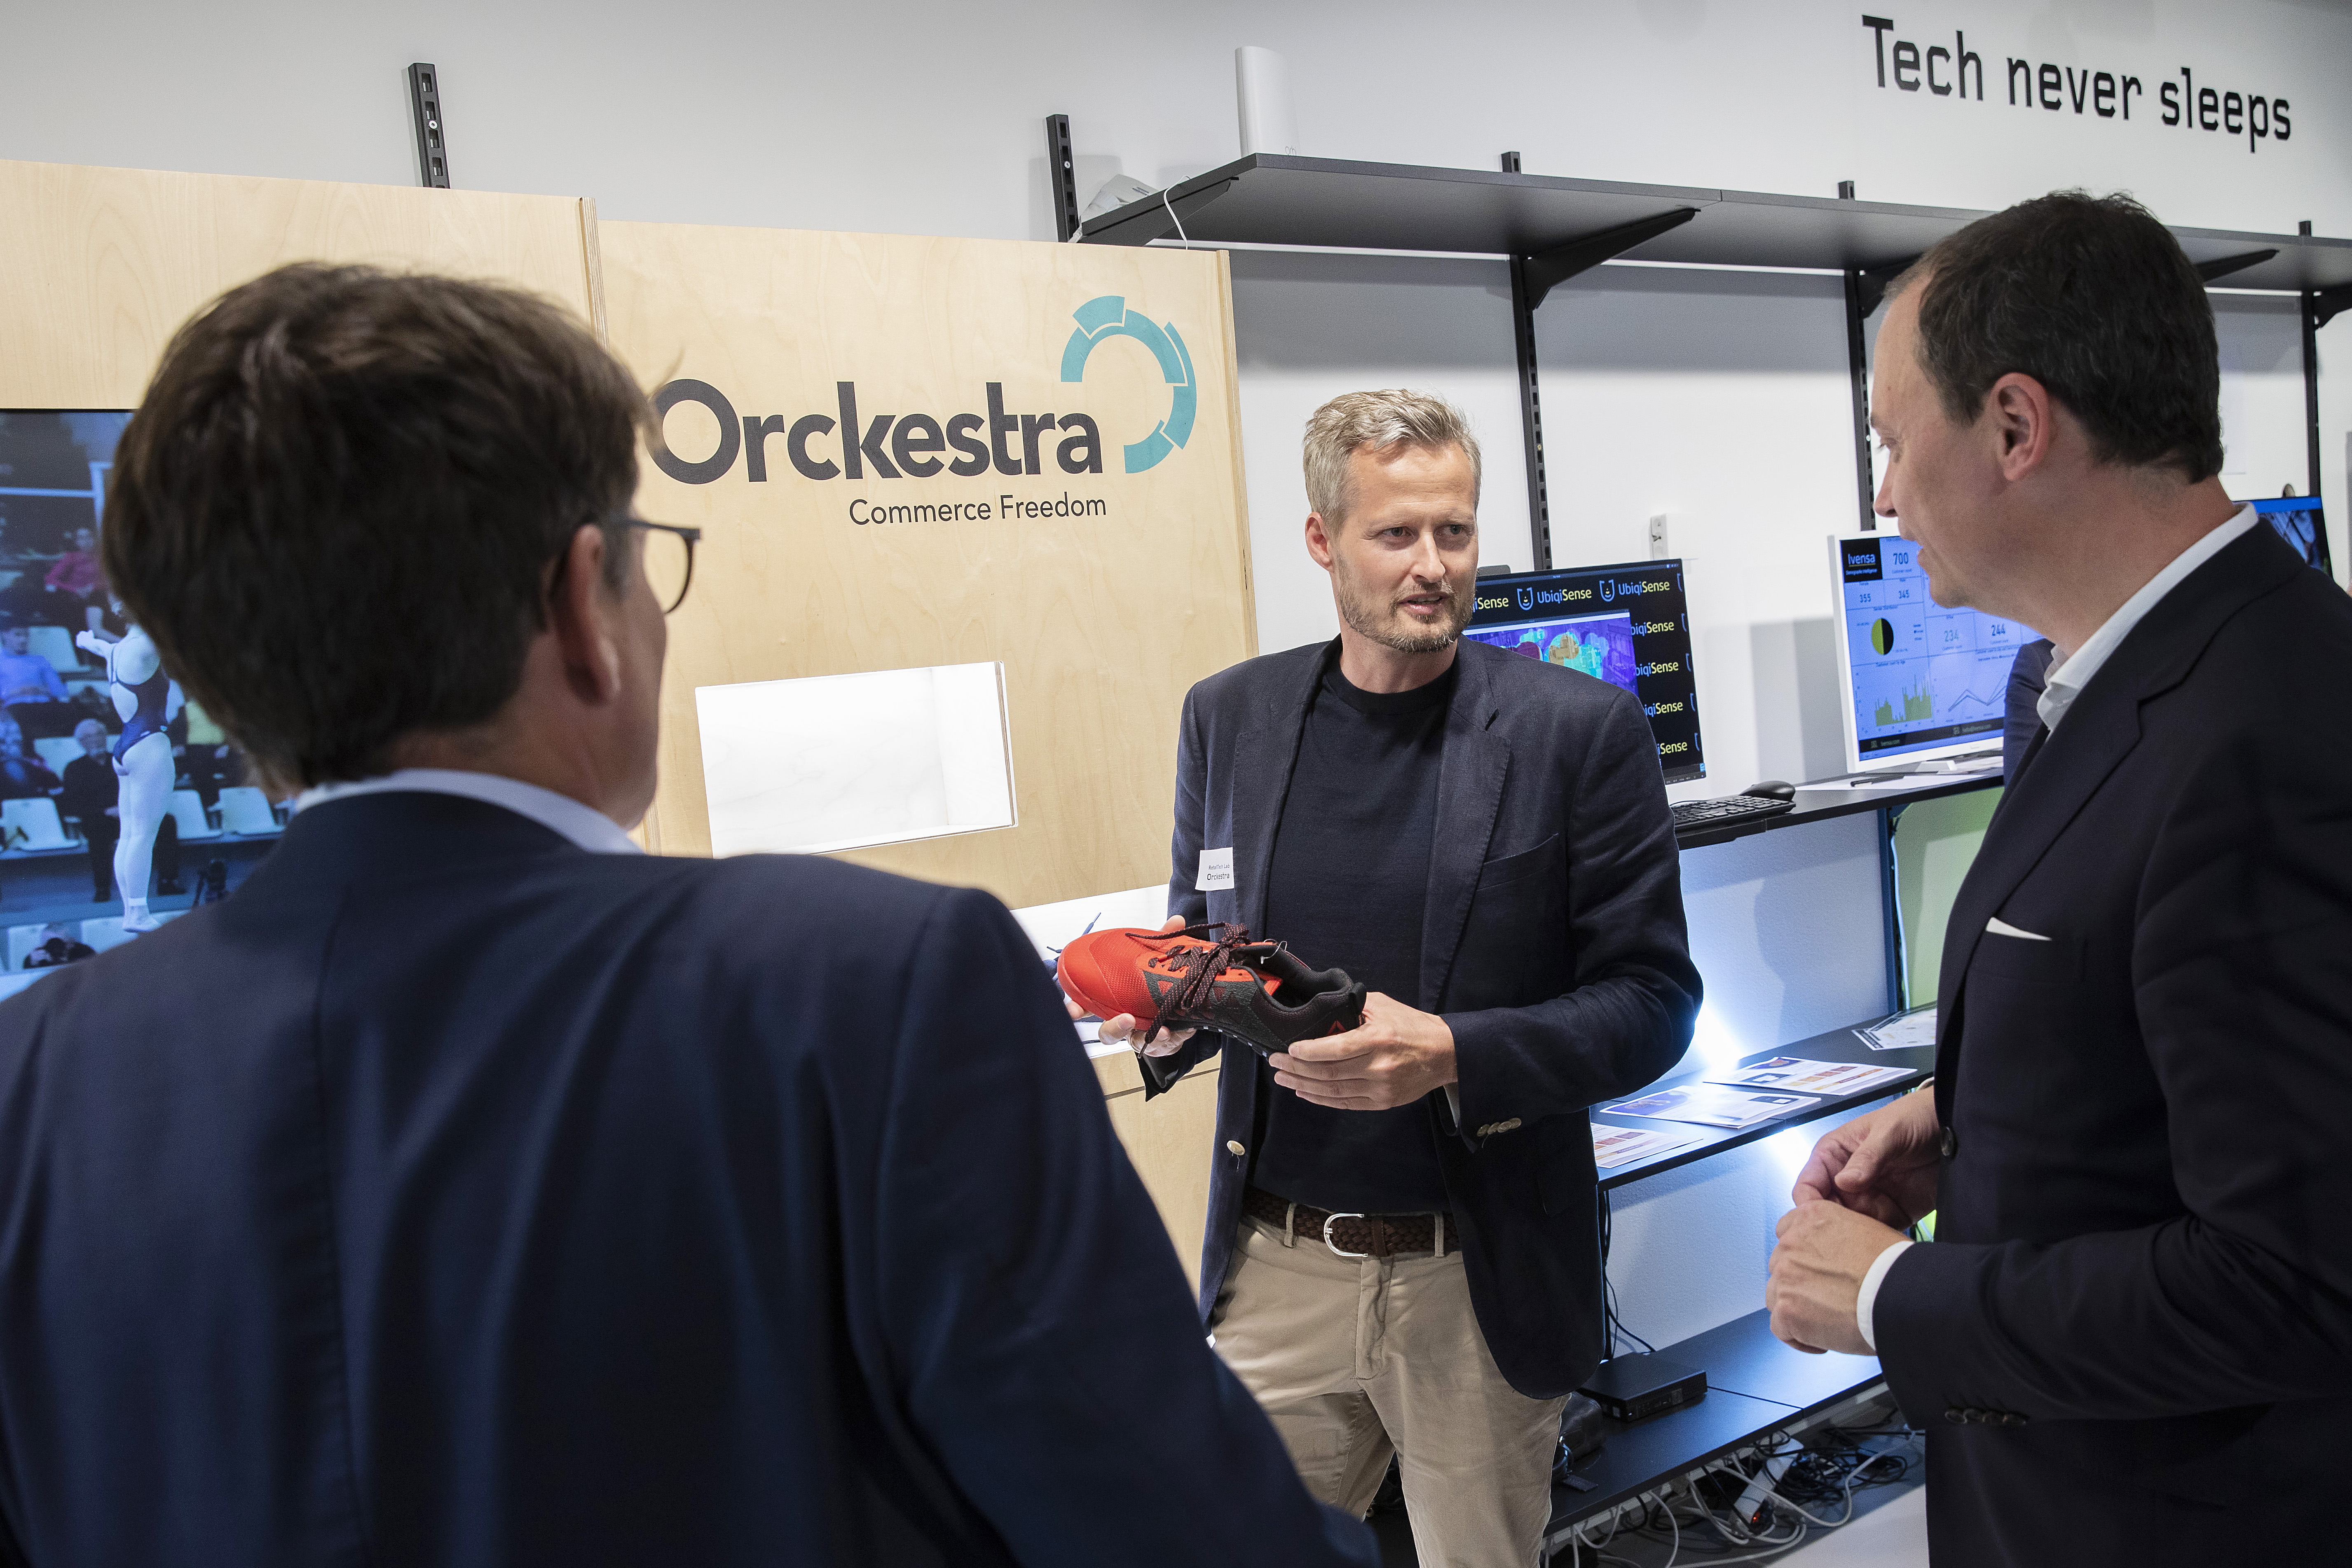 Orckestra is selected by the RetailTech Lab to showcase what the modern retail store looks like